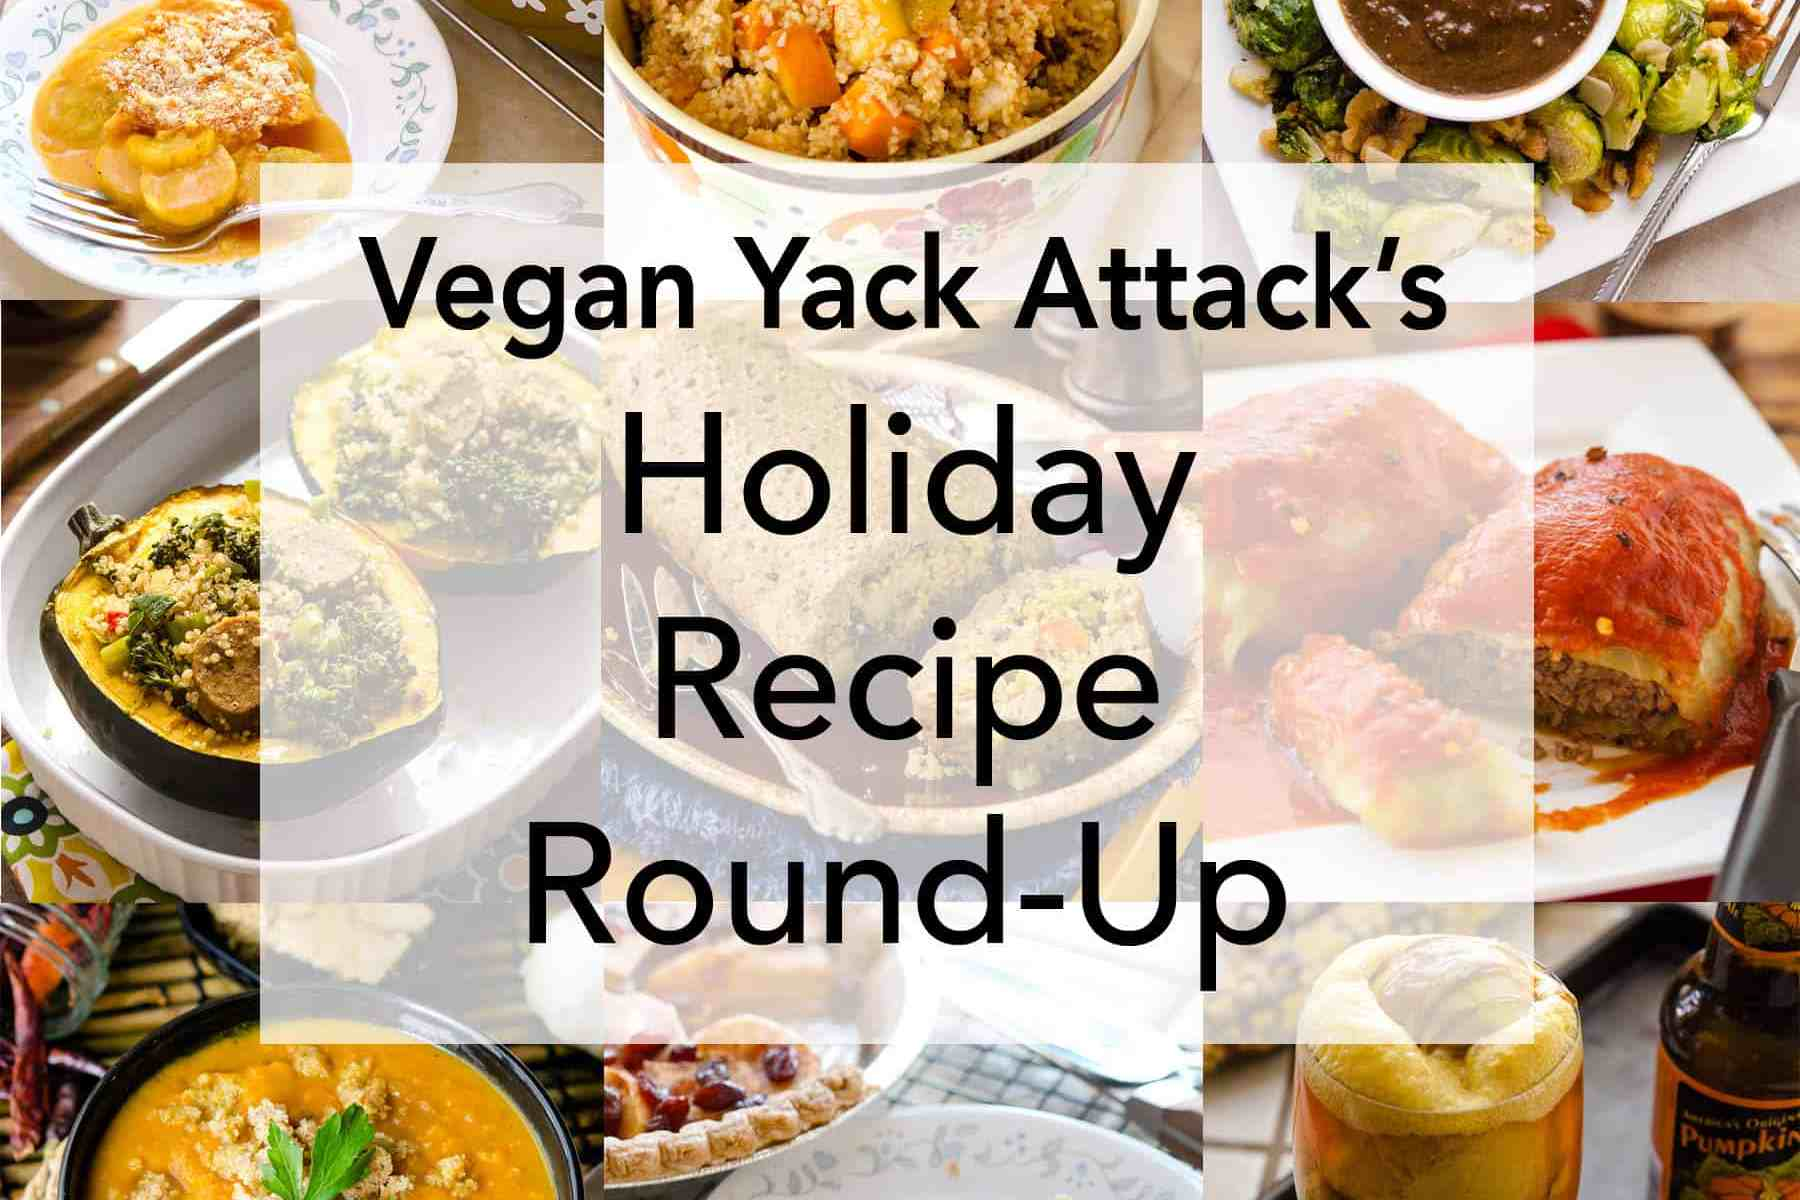 A delectable, all-vegan, Holiday Recipe Round Up of dishes to serve at holiday meals and get togethers. Easy and appetizing!